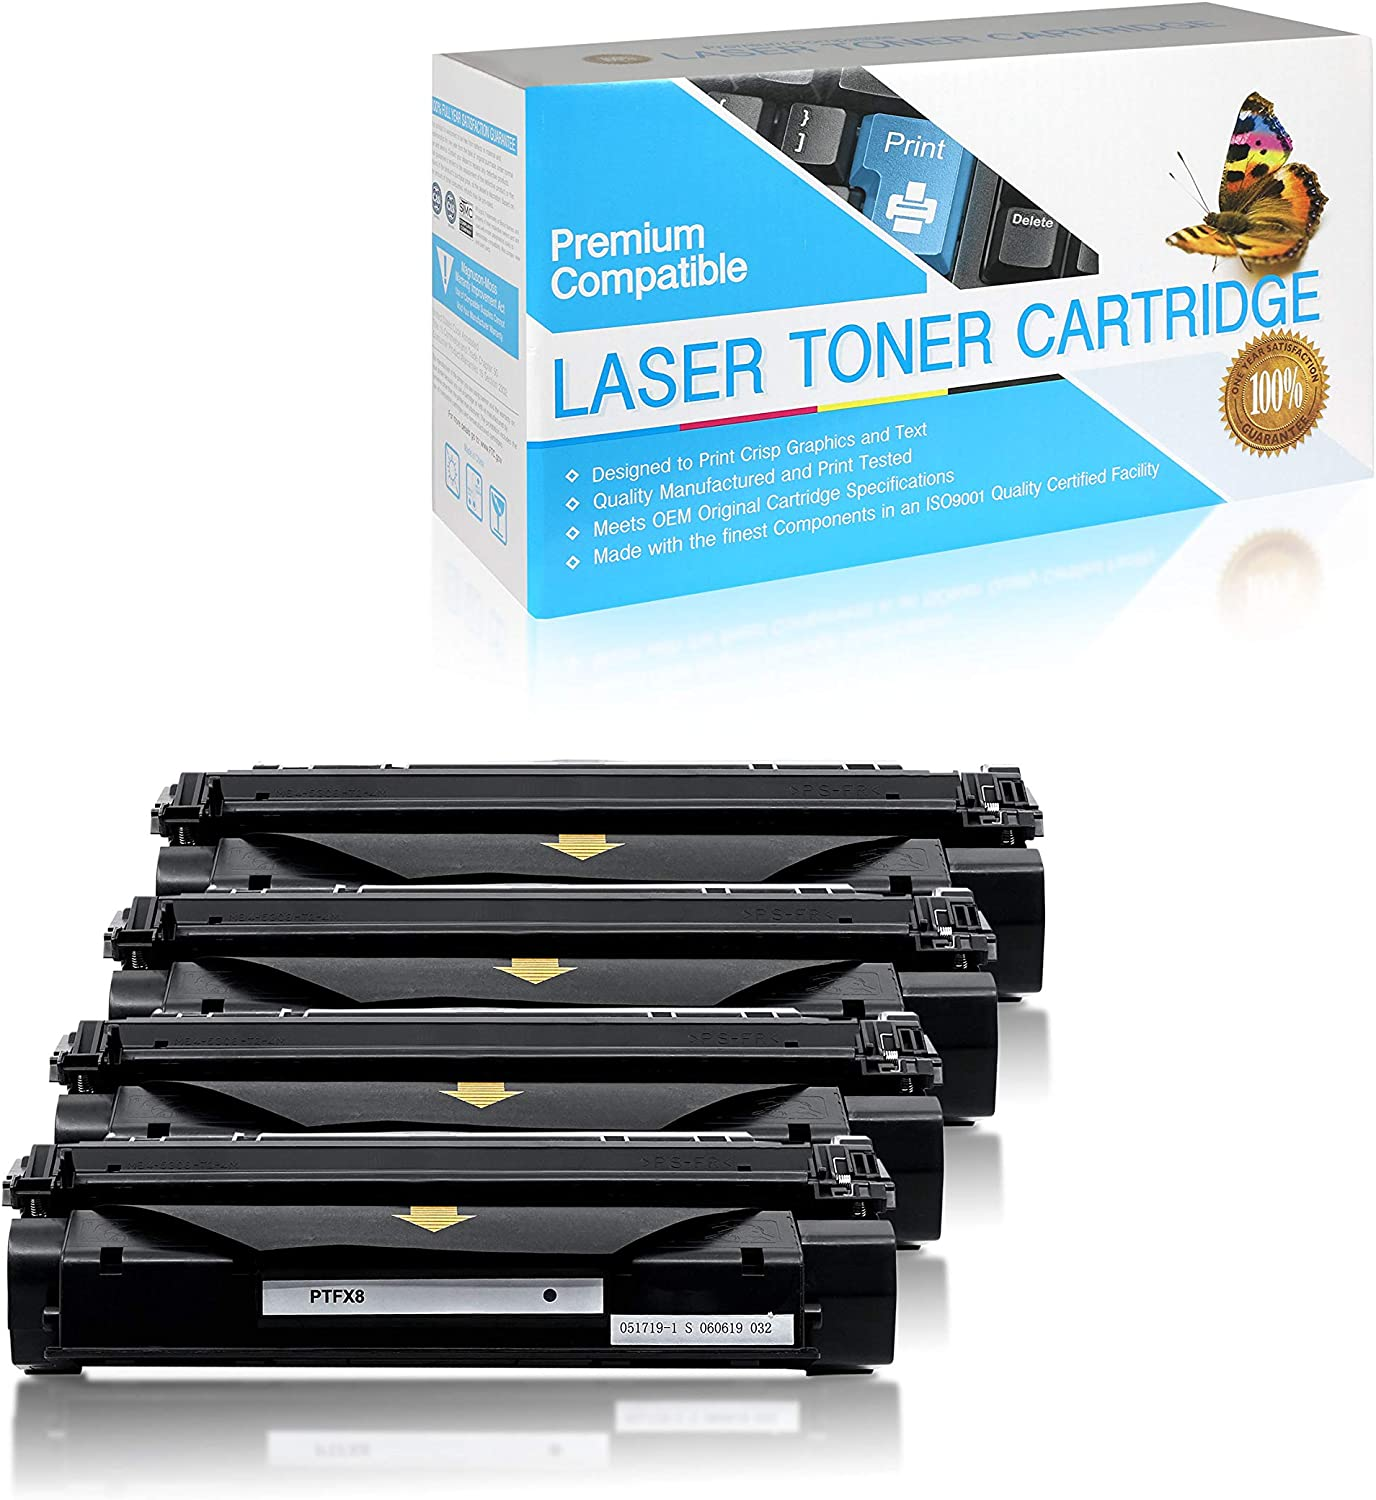 FX8 SuppliesOutlet Compatible Toner Cartridge Replacement for Canon FX-8 S35 Black,4 Pack